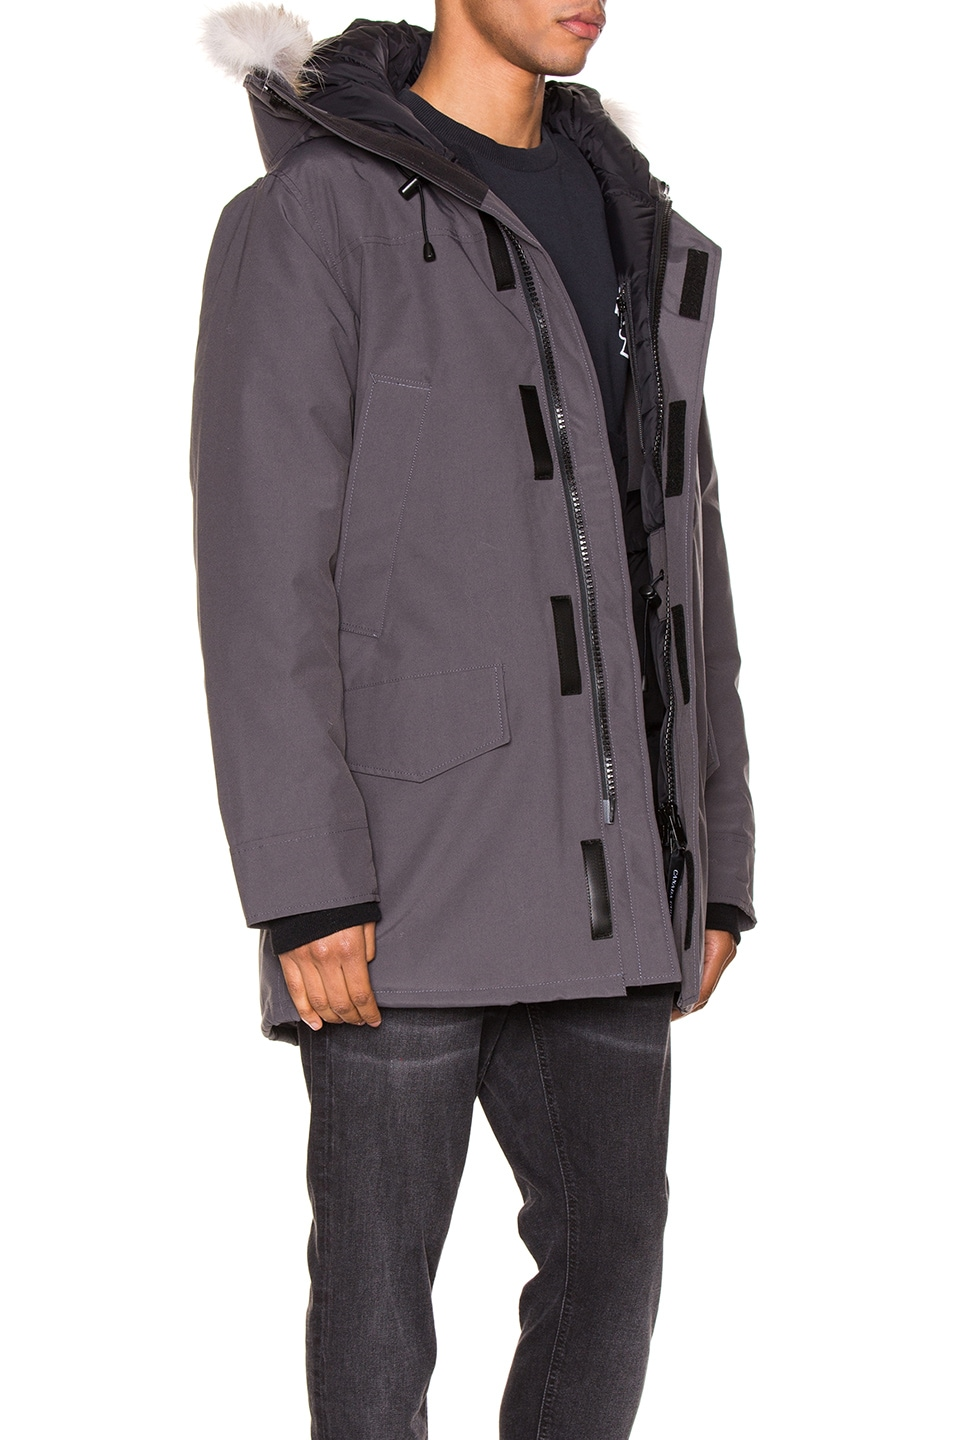 Image 3 of Canada Goose Langford Jacket in Graphite